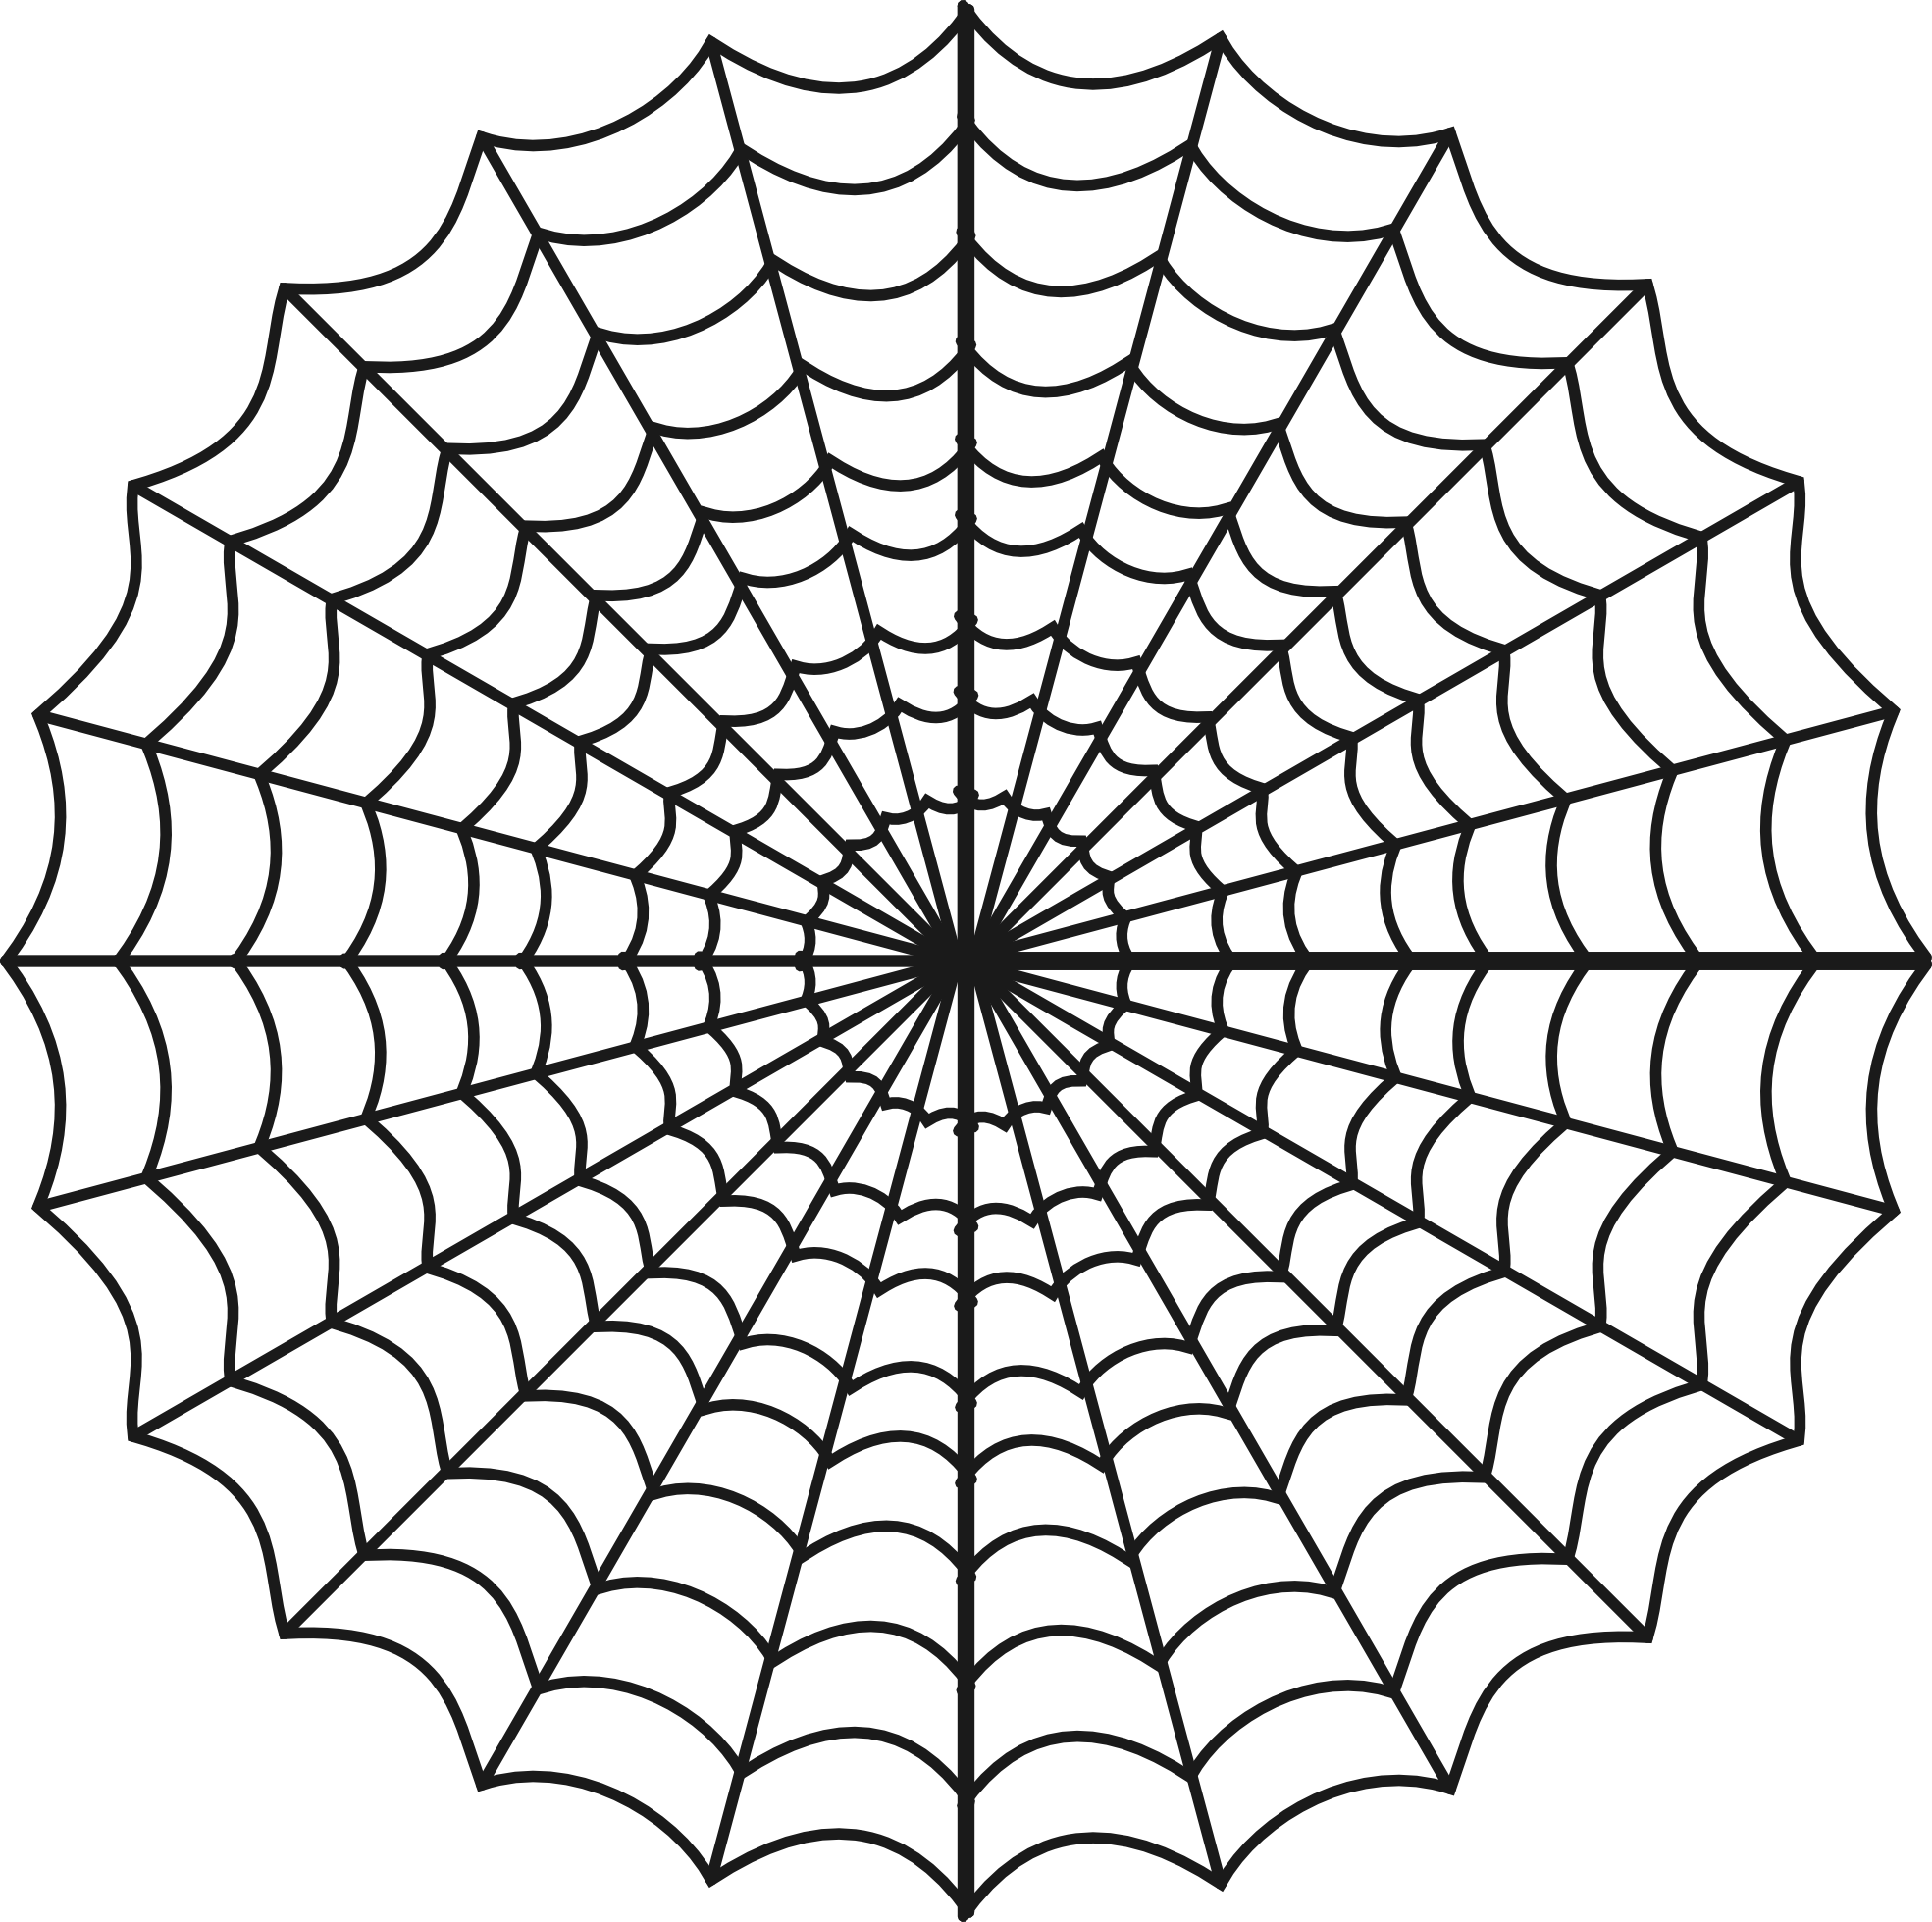 Spiderweb clipart black and white. Spider panda free images